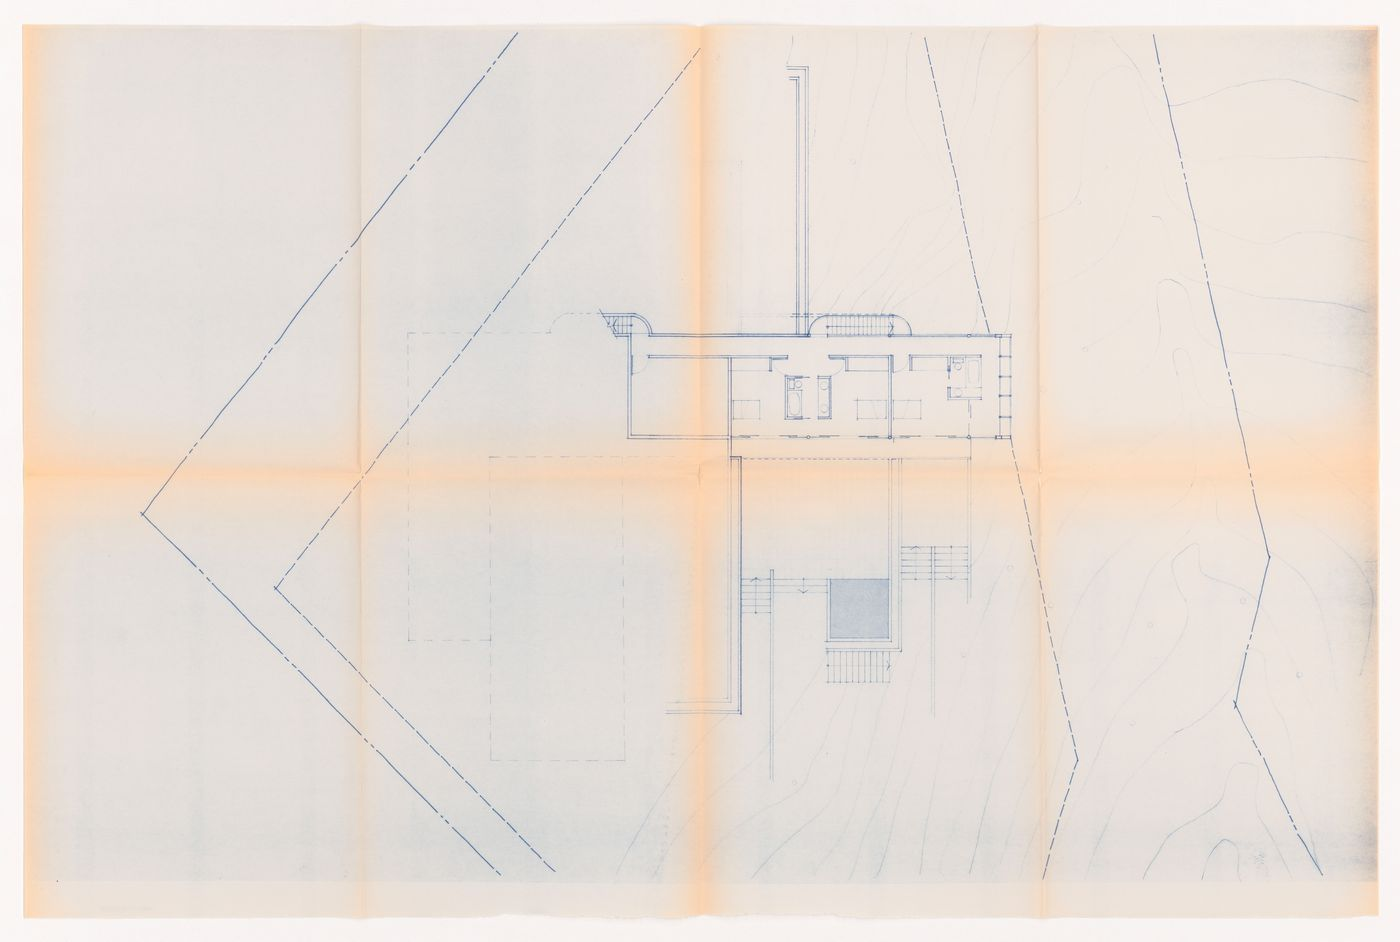 Plan for Hugo Eppich House, Vancouver, British Columbia